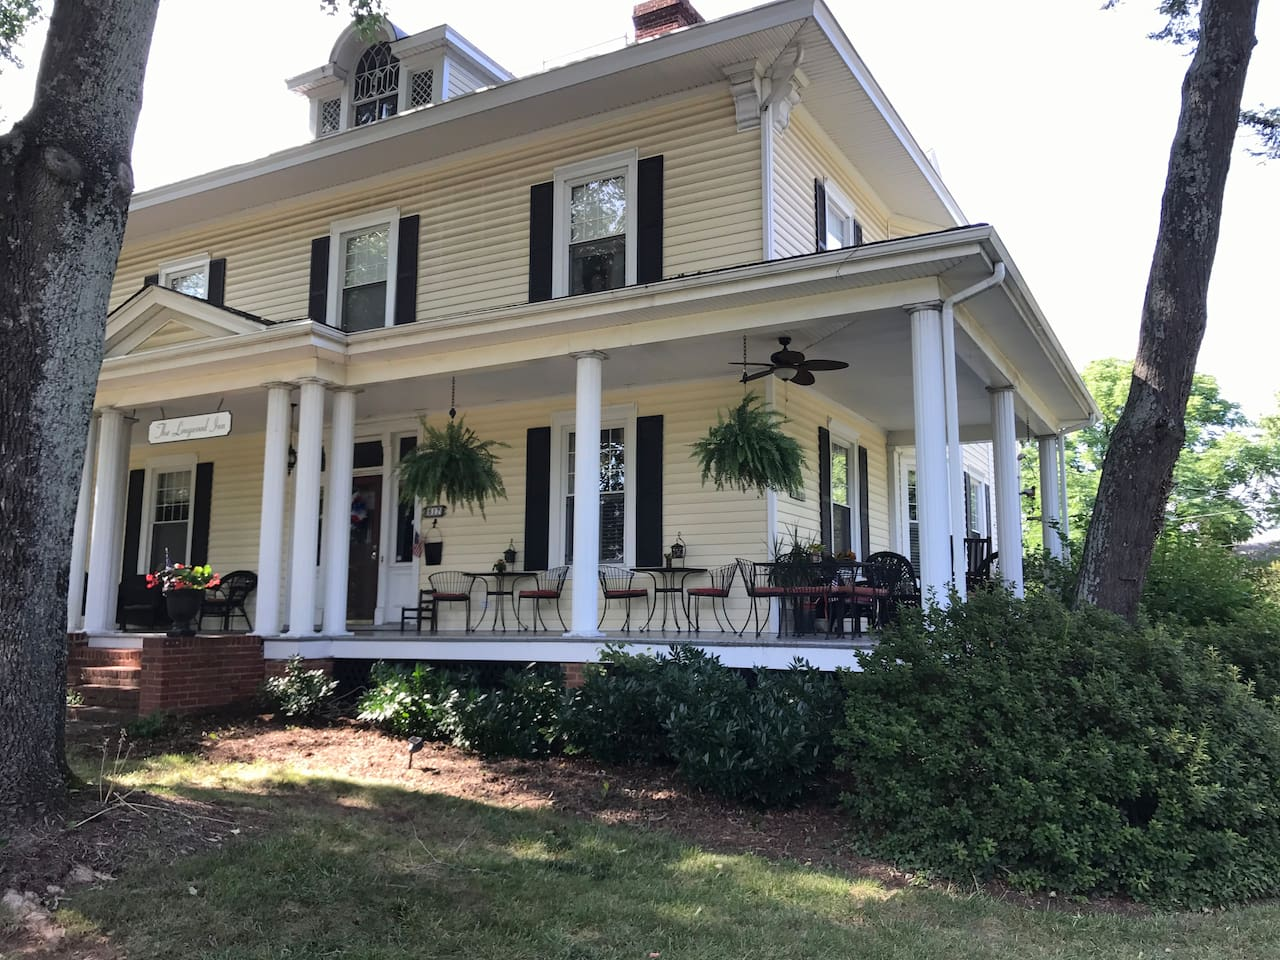 Come experience Bedford in an 1890's Colonial Revival style home with realxing and inviting wrap around front porch.